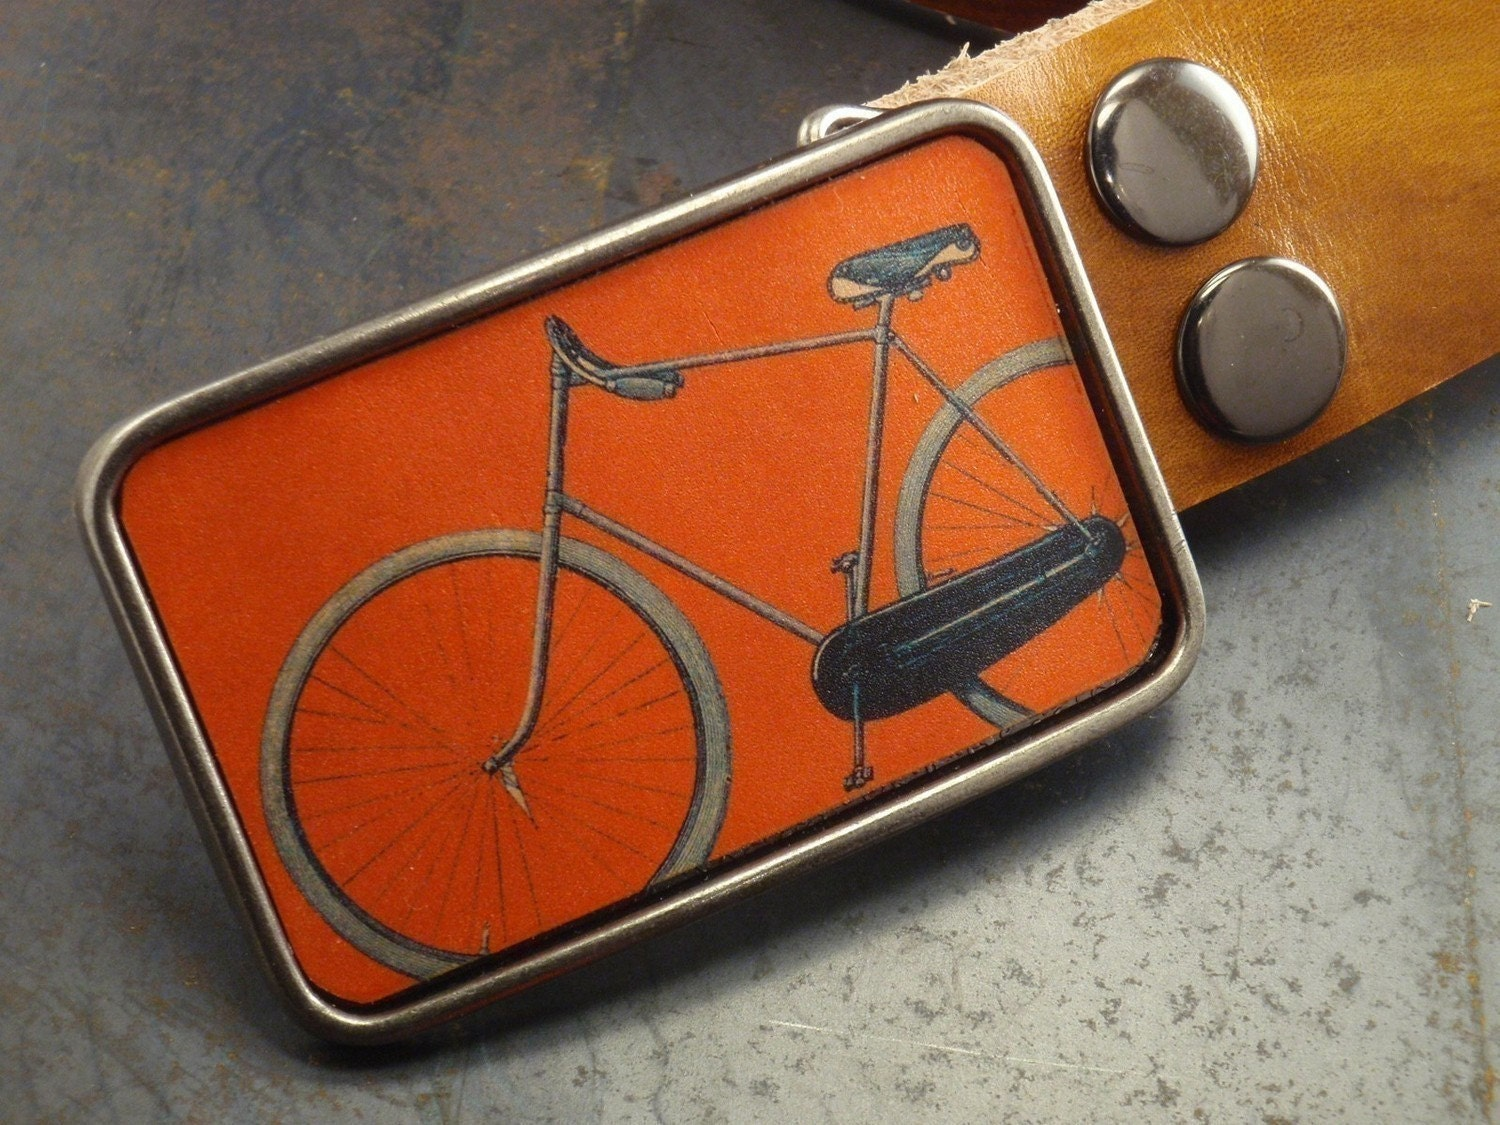 Belt buckle bike, orange retro, Park your car bike leather belt buckle